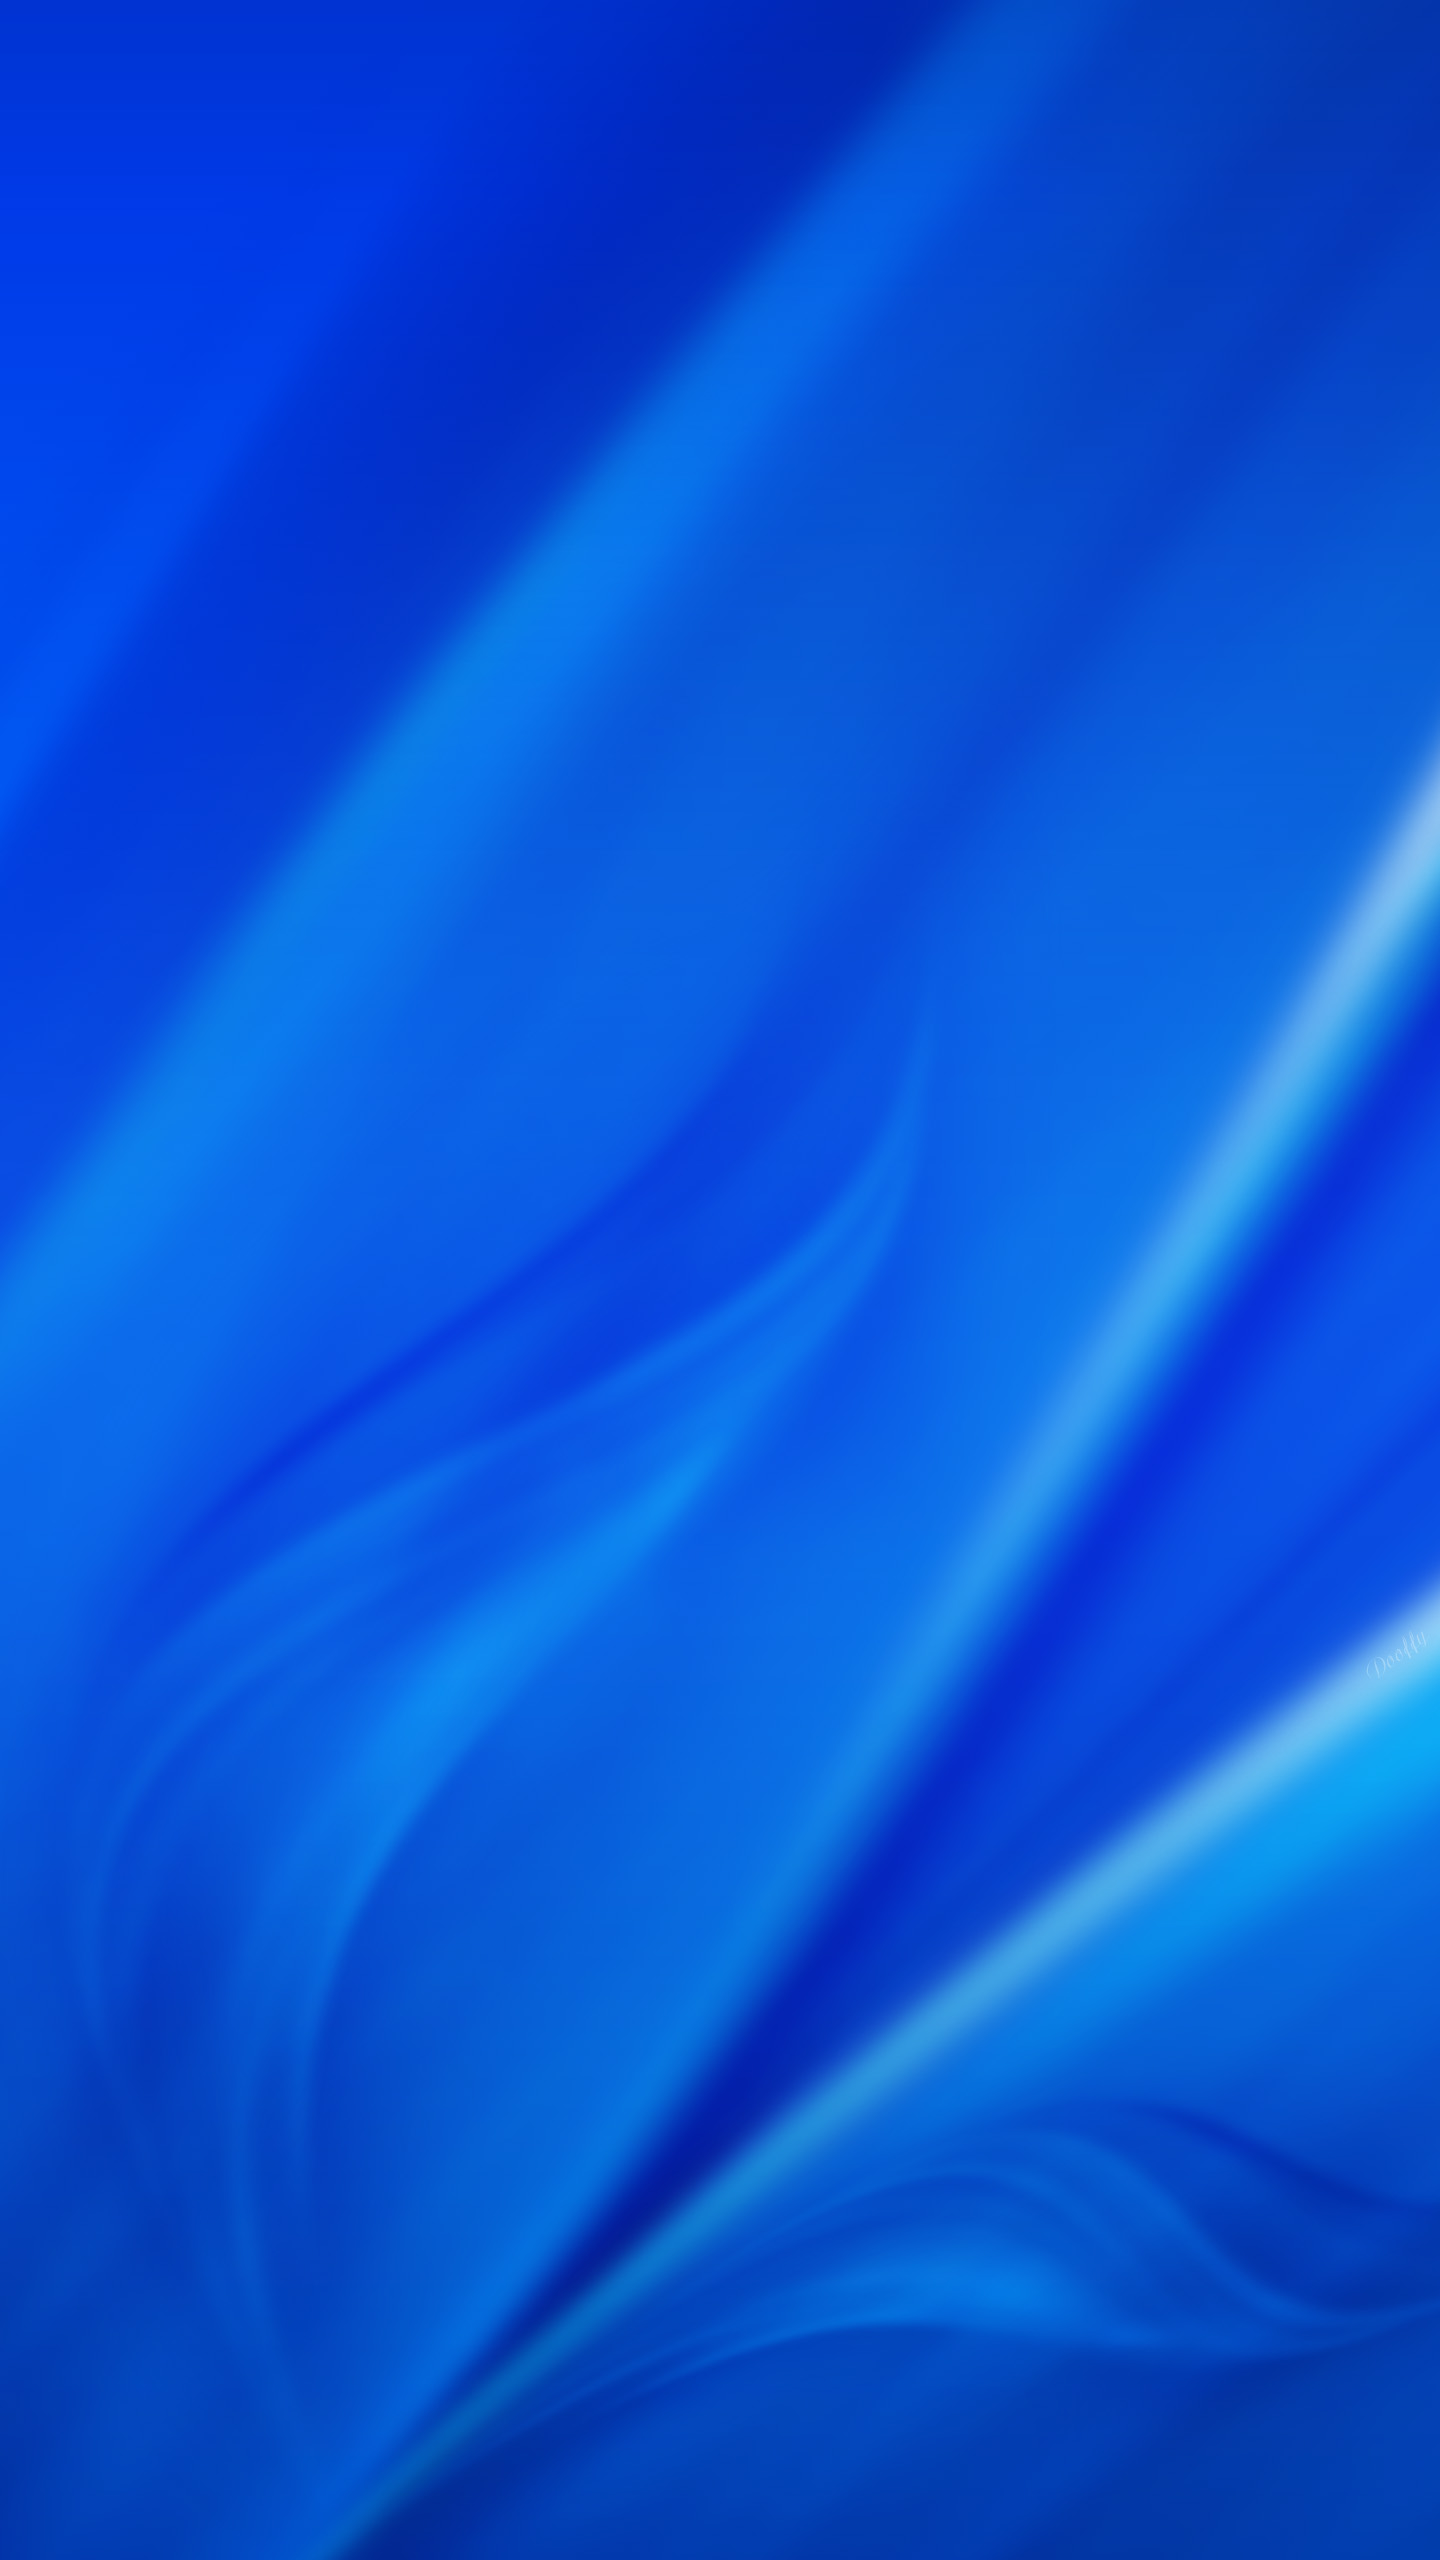 wallpaper samsung galaxy s6 blue by dooffy by dooffy design on